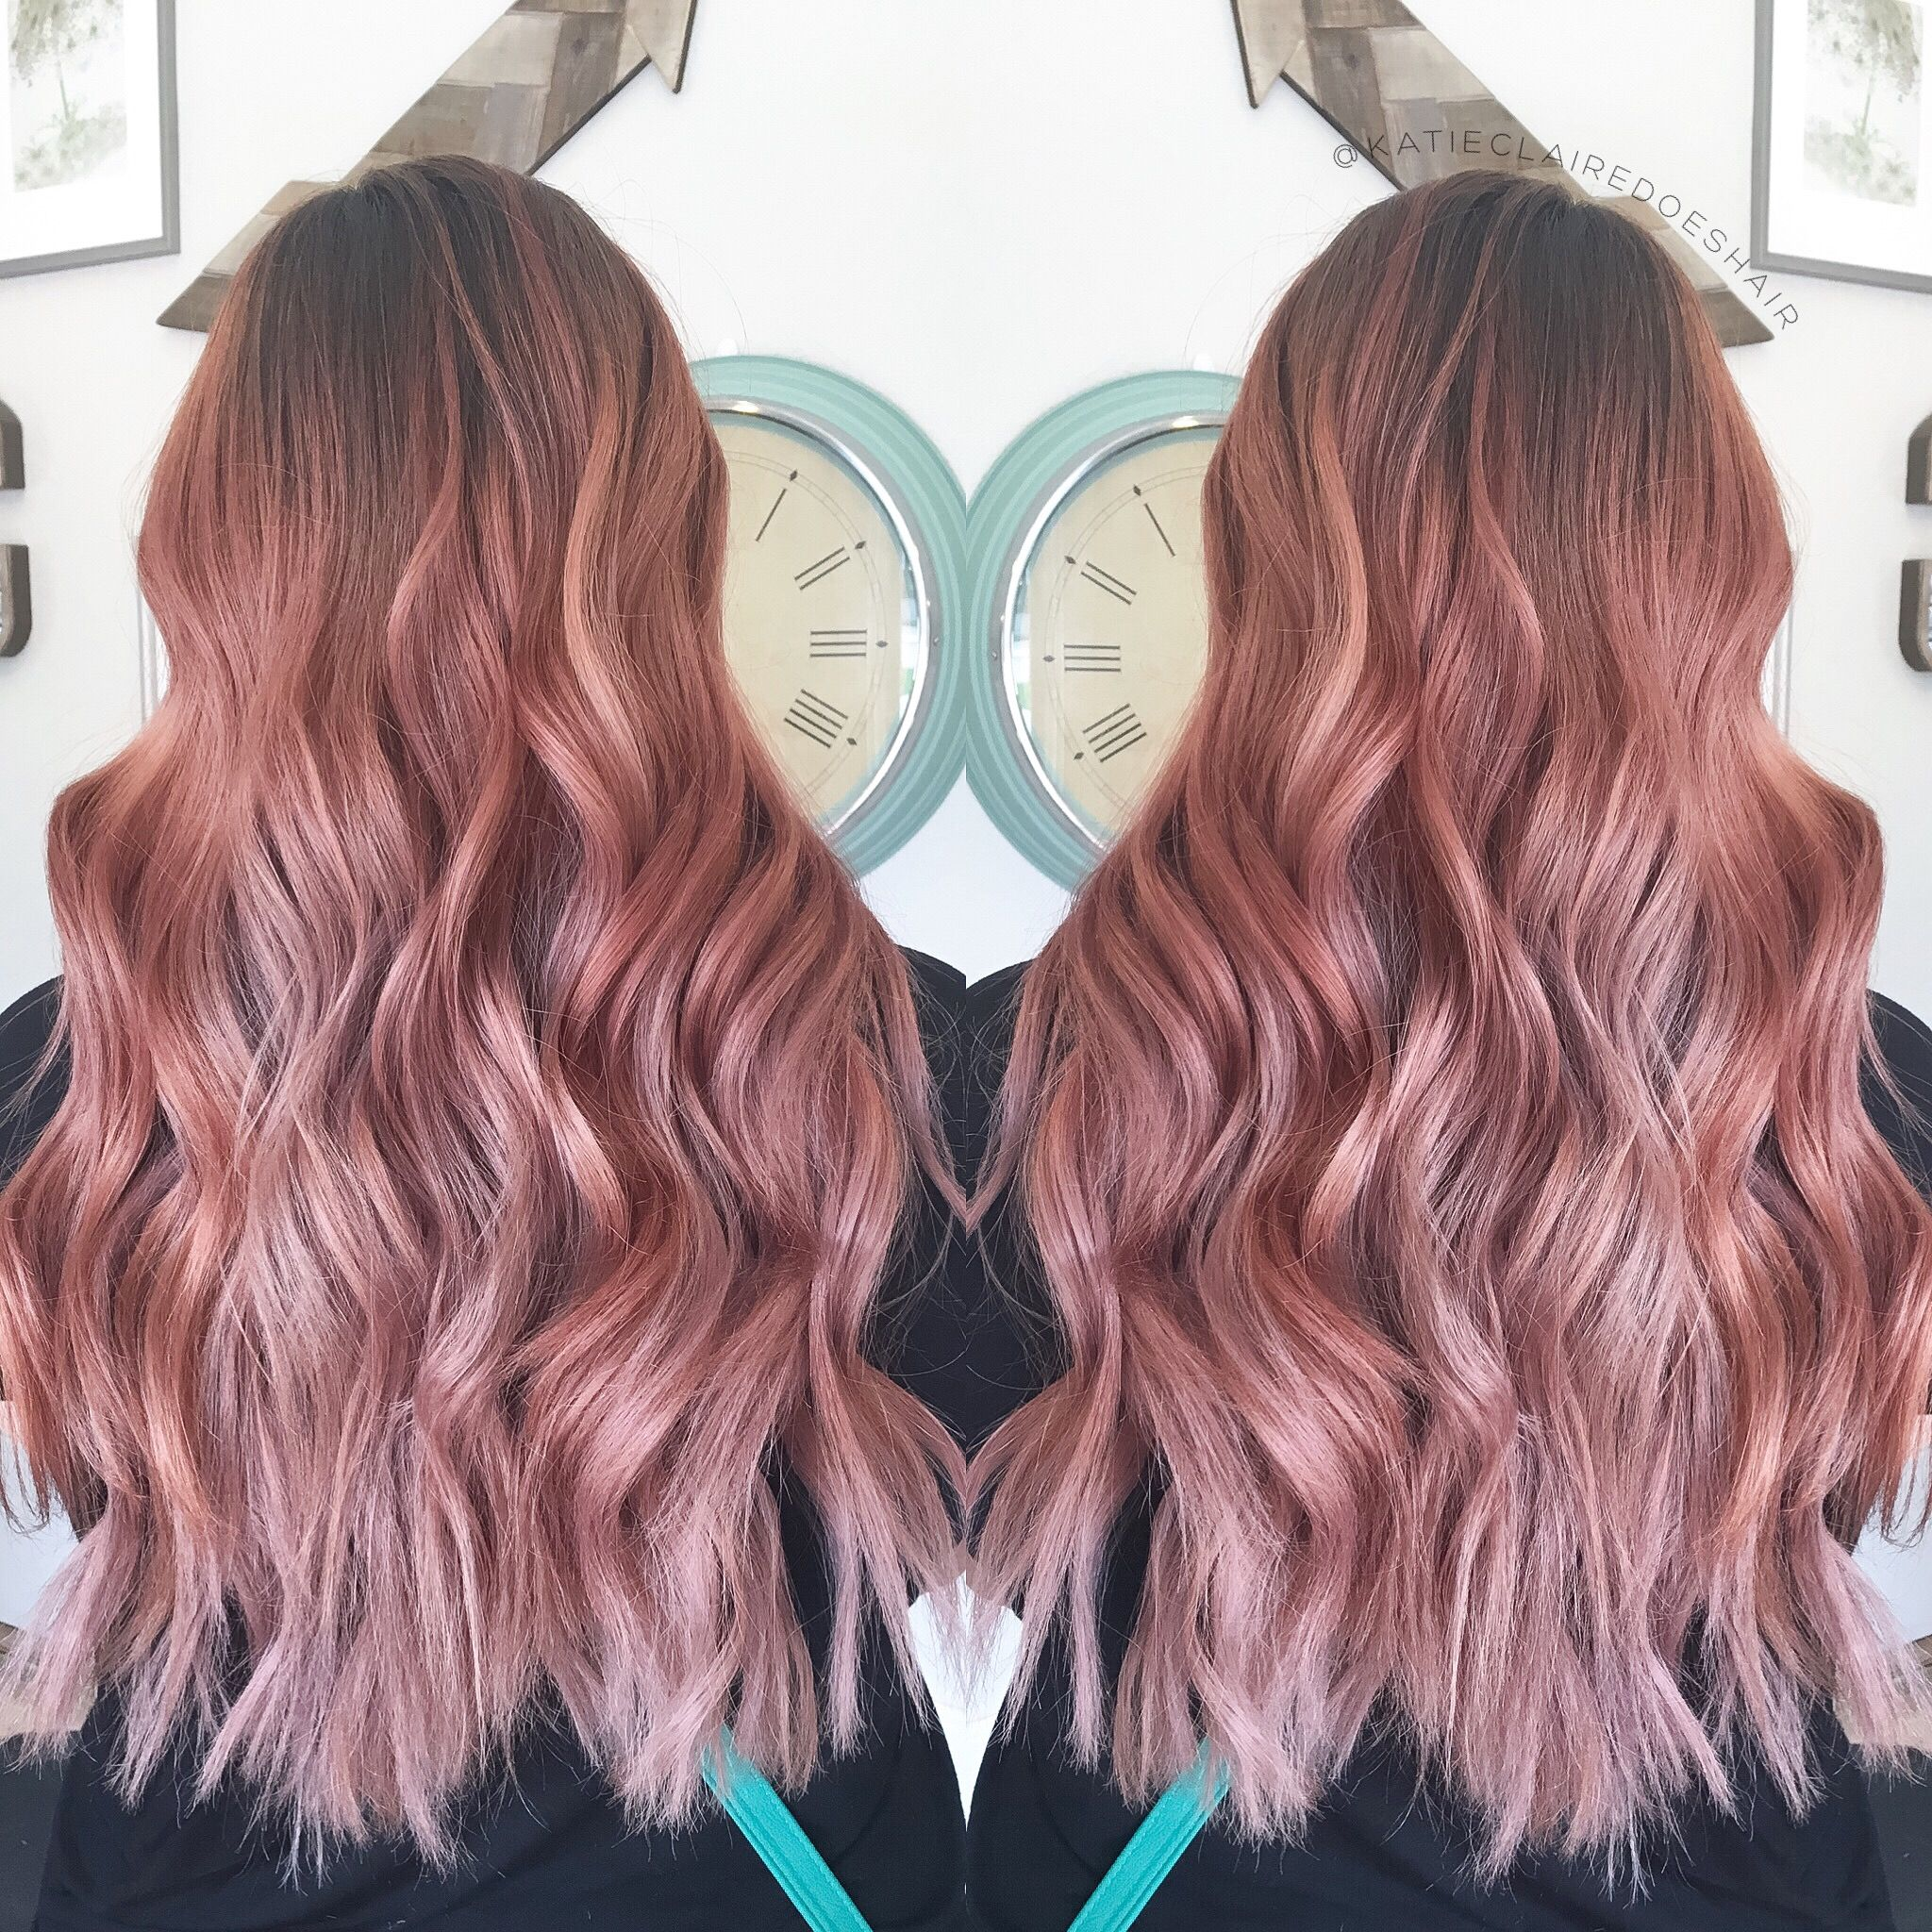 Dusty Rose Hair Balayage Gold Rosey